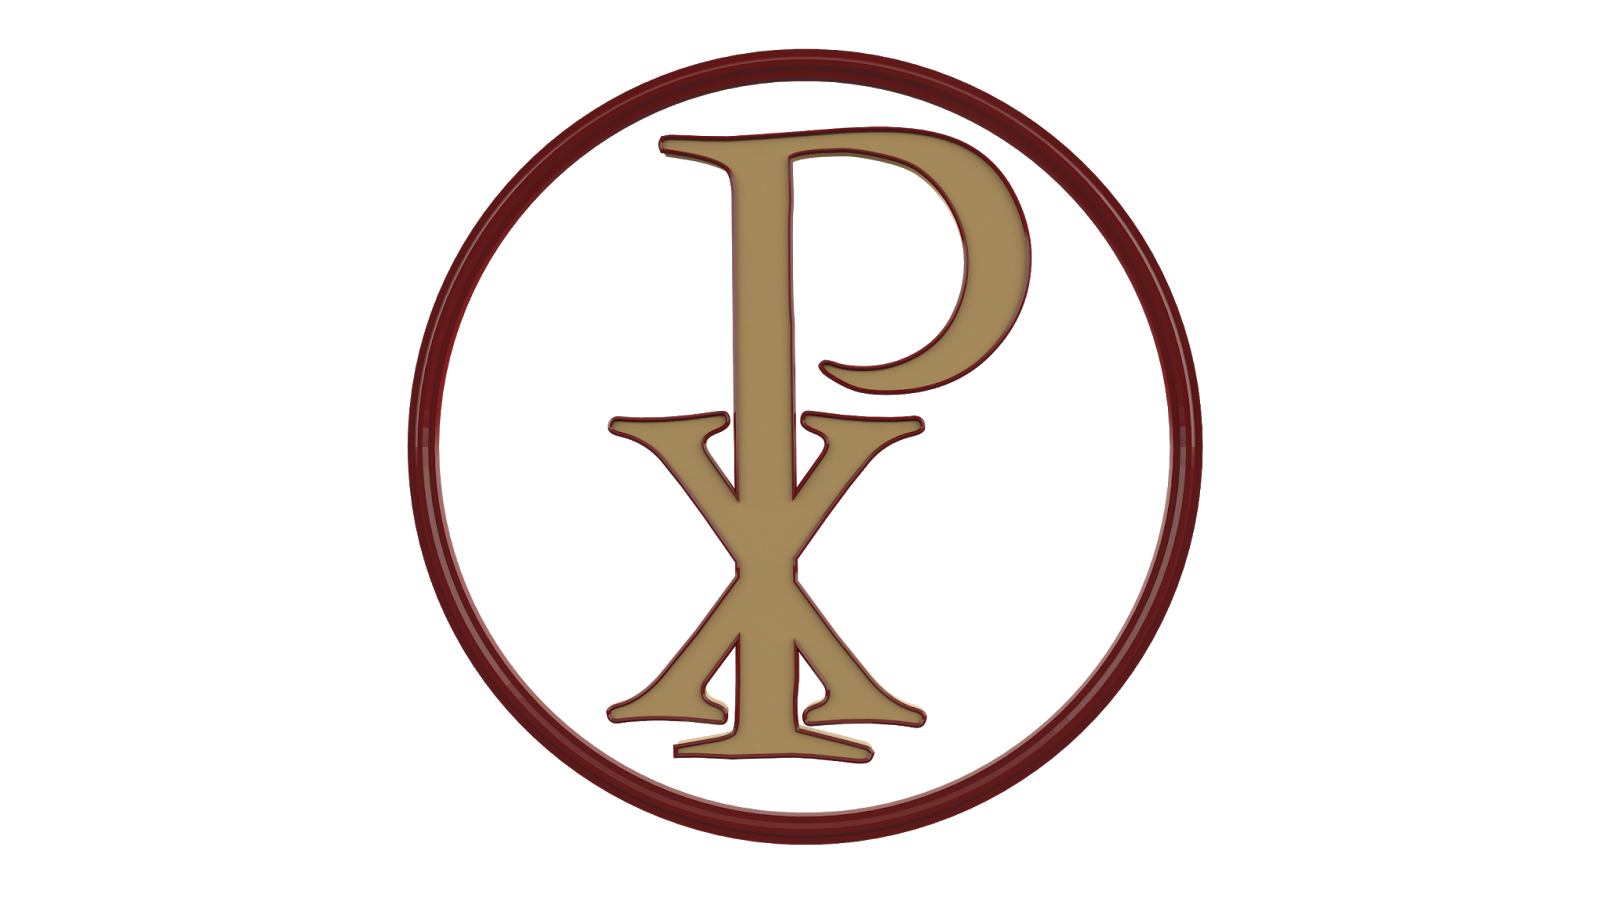 Png Park High Res Png Files Christian Px Symbol